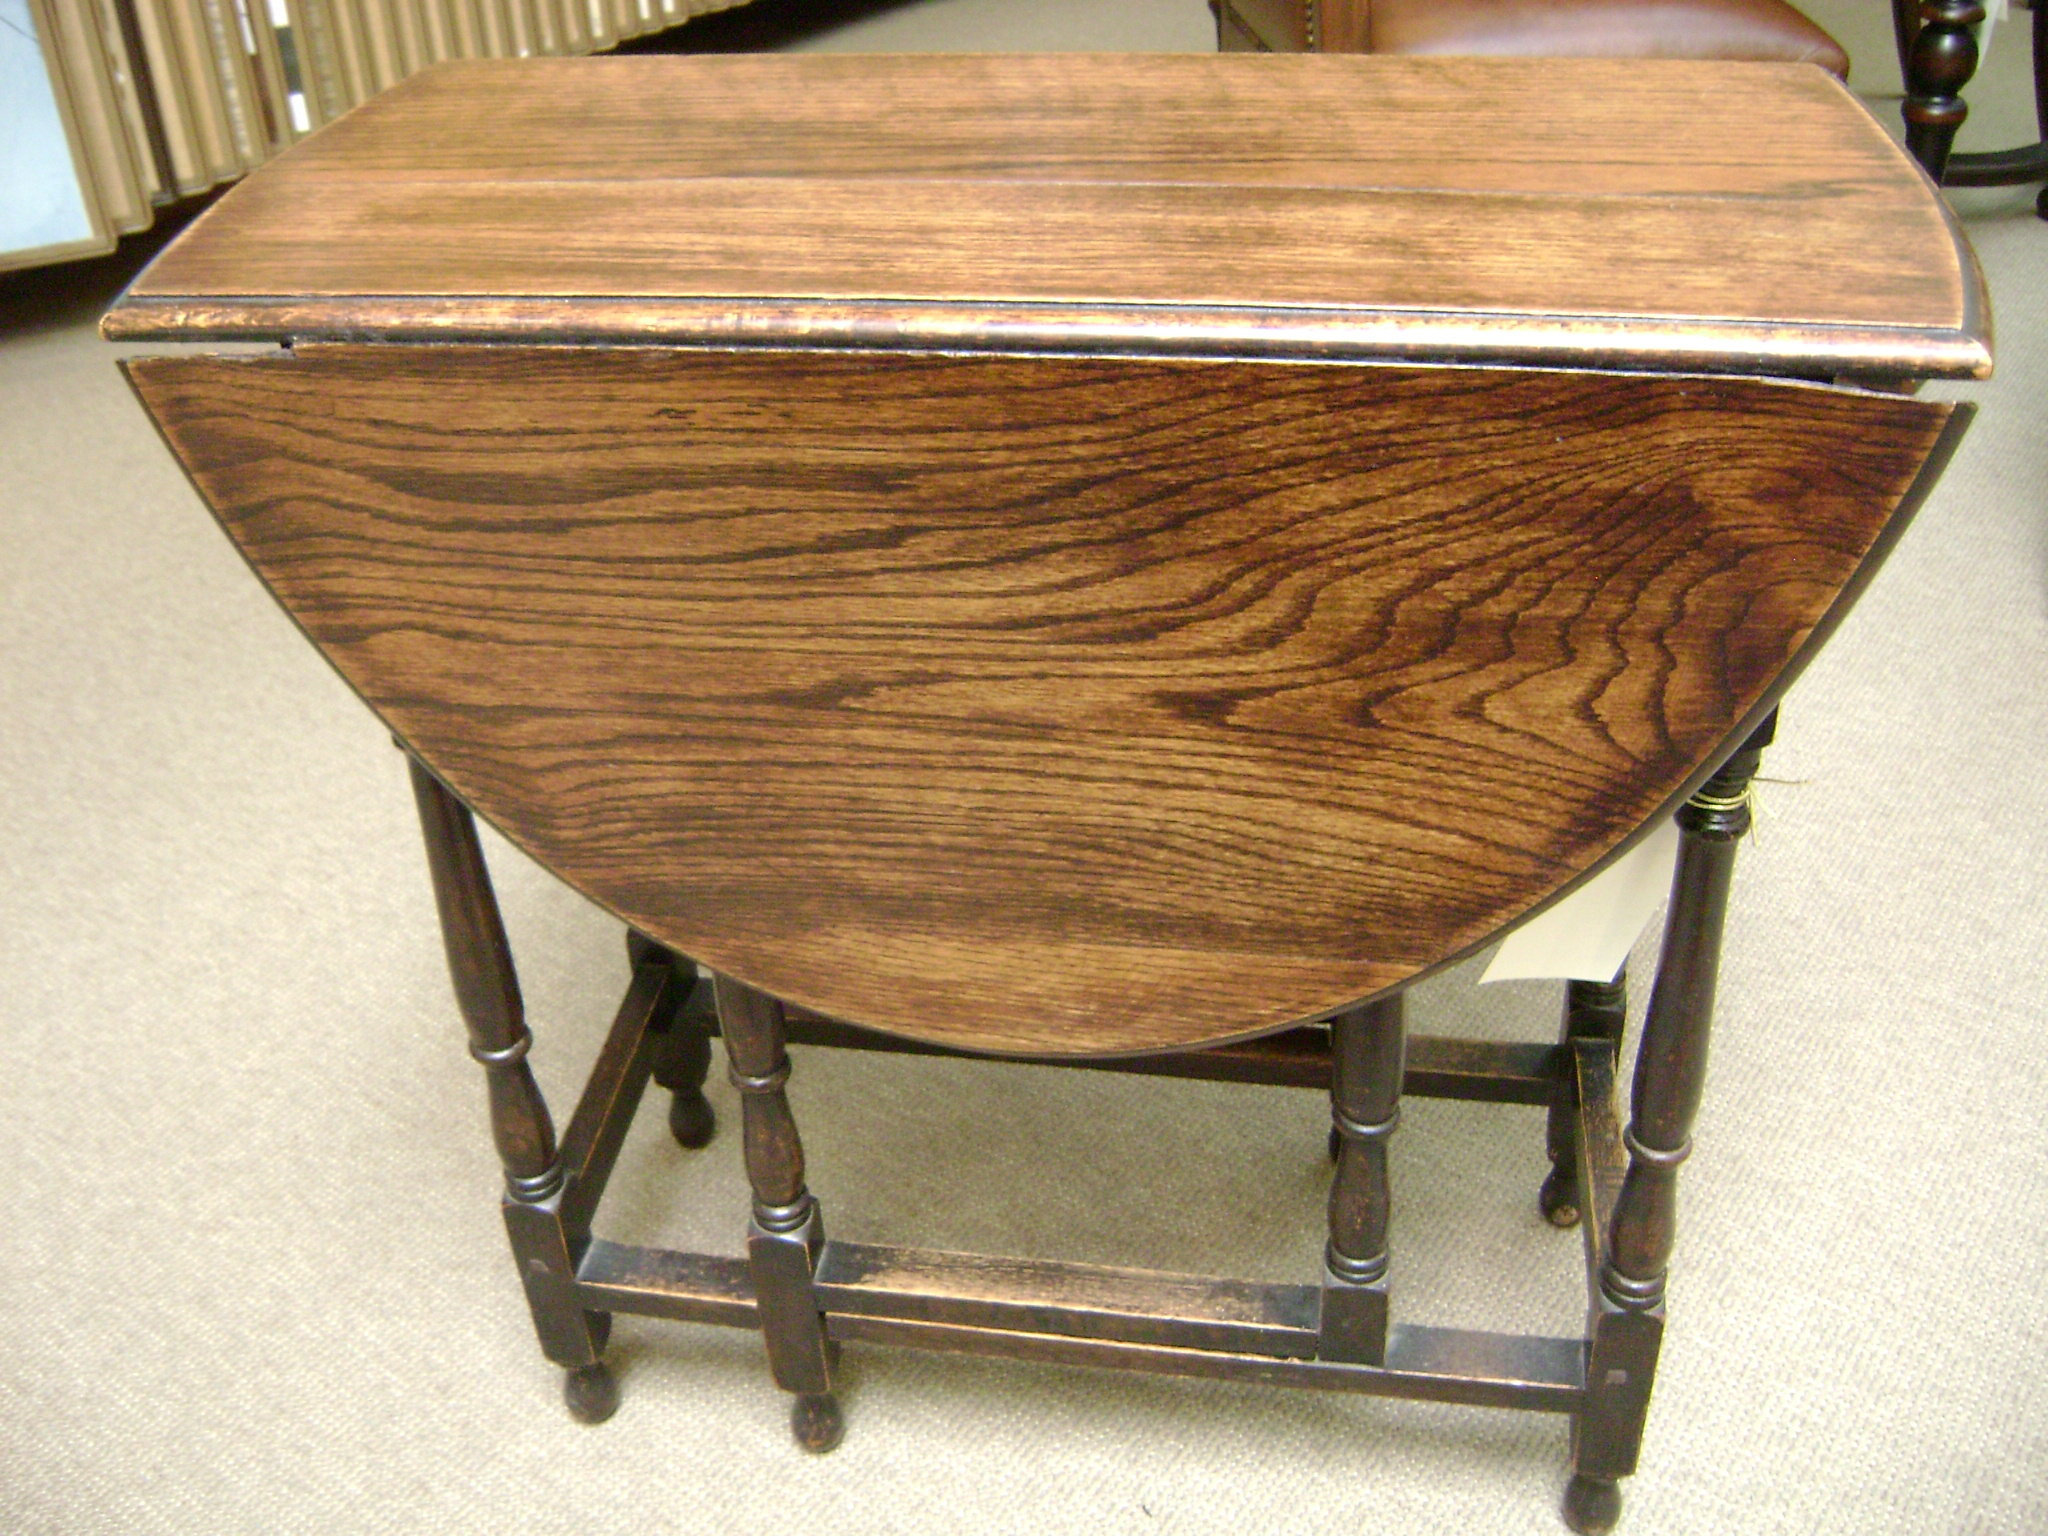 Floor Sample Sale : fld vintage gateleg table 2 from estateofdesign.wordpress.com size 2048 x 1536 jpeg 1275kB